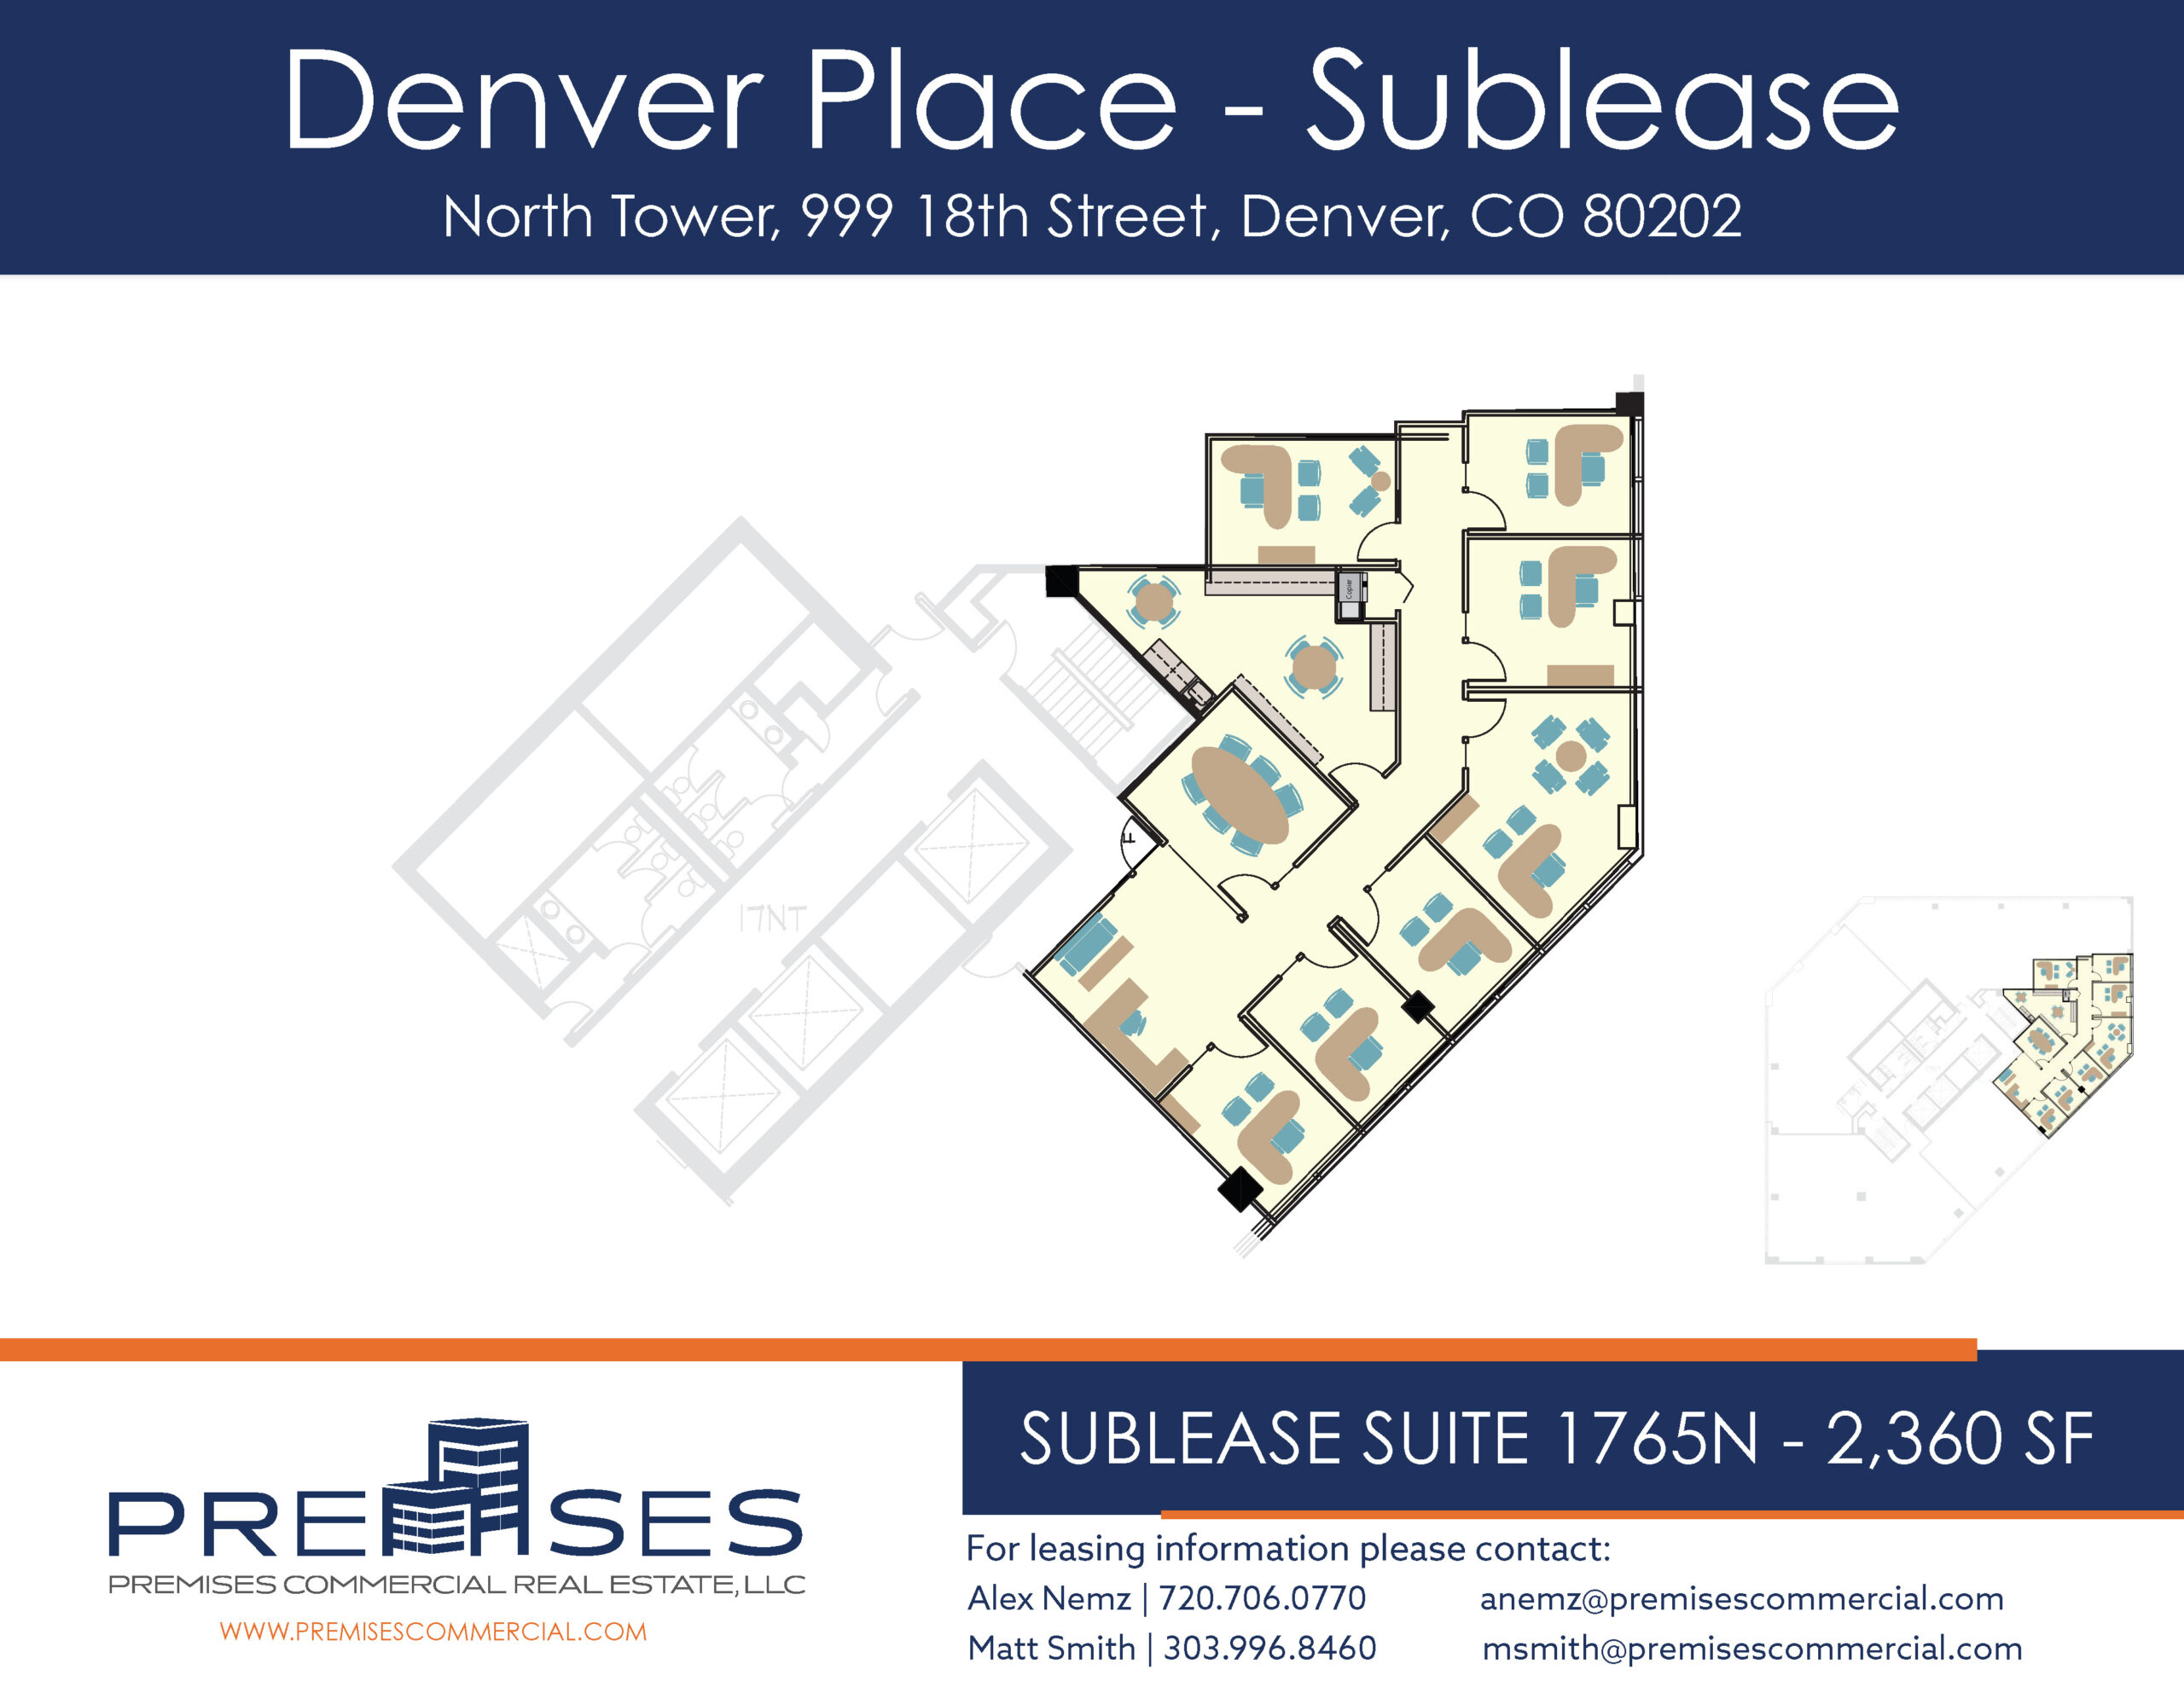 Sublease Suite 1765N - 2,360 sf